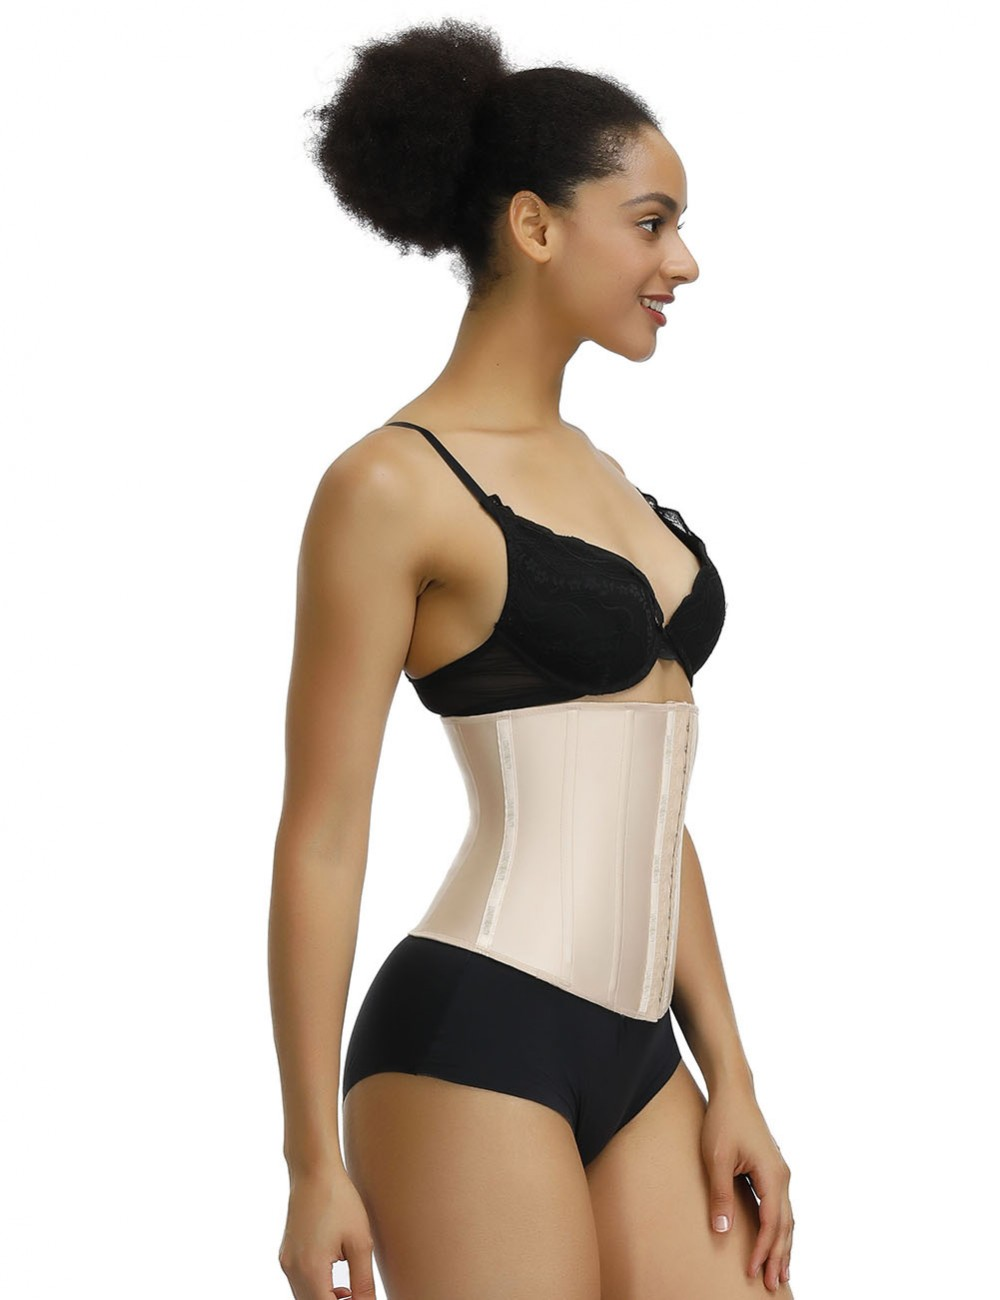 Skin Color Waist Cincher Latex 13 Steel Boned Midsection Control